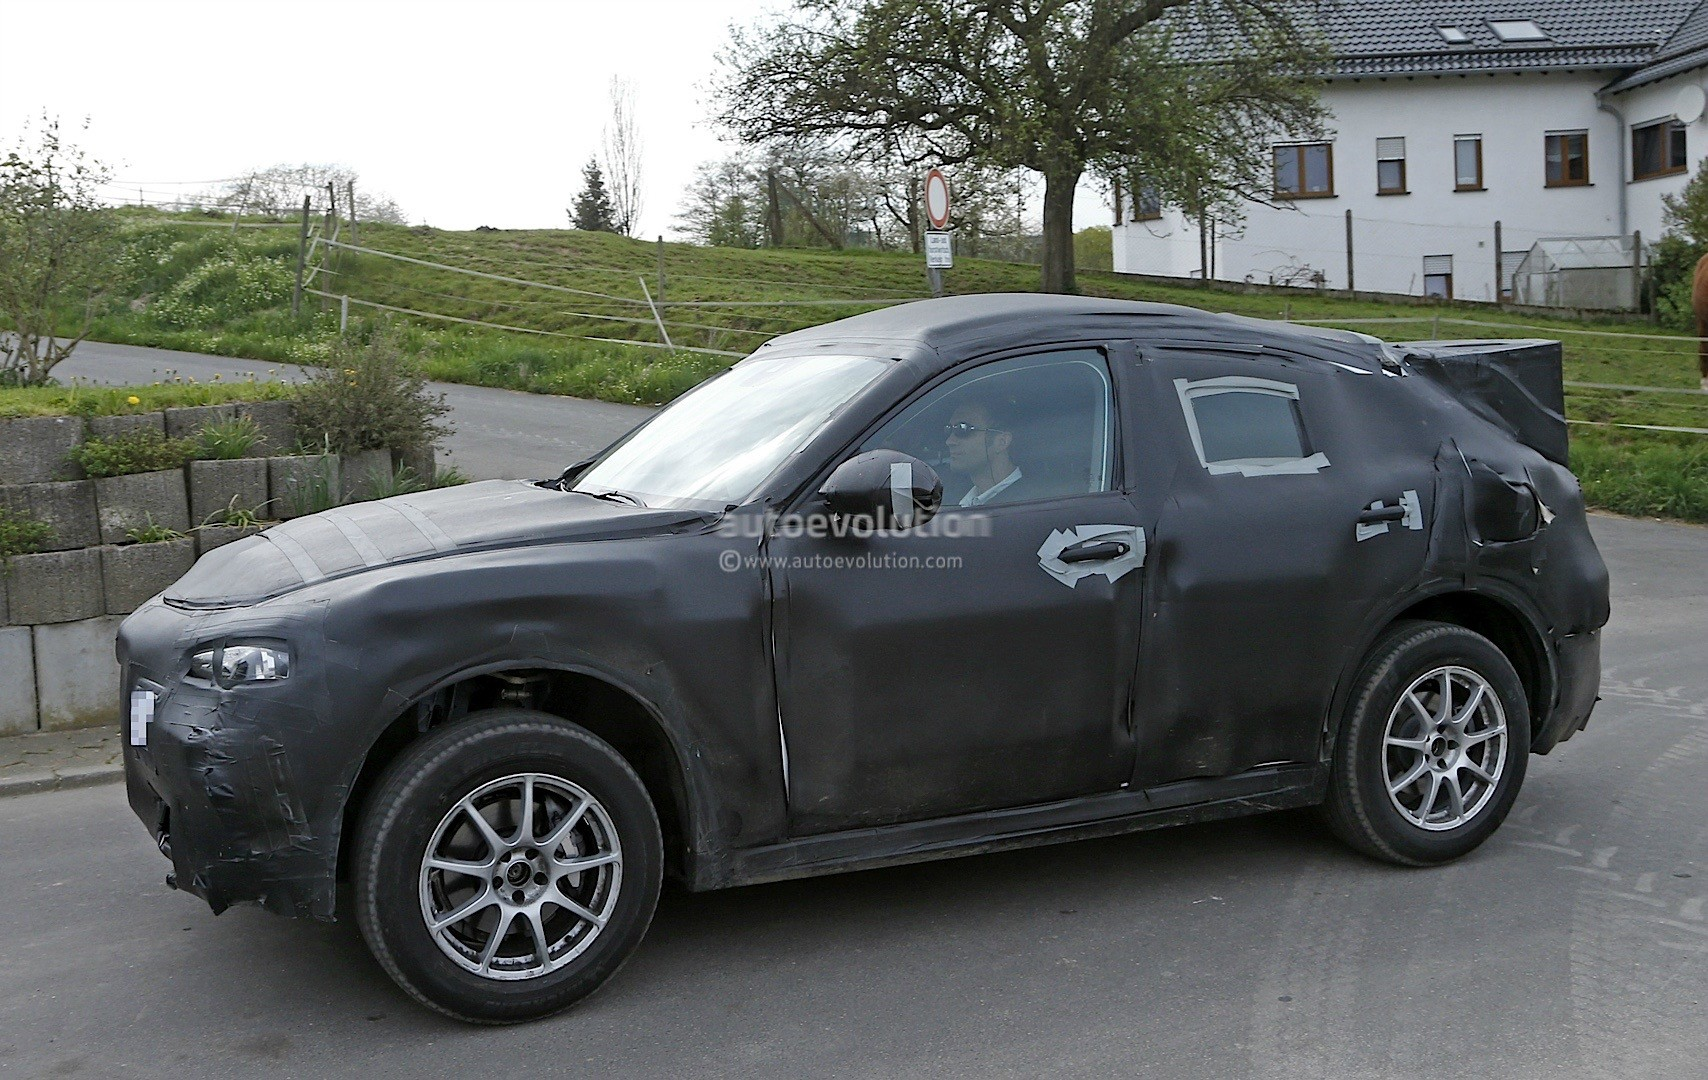 2017 alfa romeo stelvio spied at the nurburgring. Black Bedroom Furniture Sets. Home Design Ideas